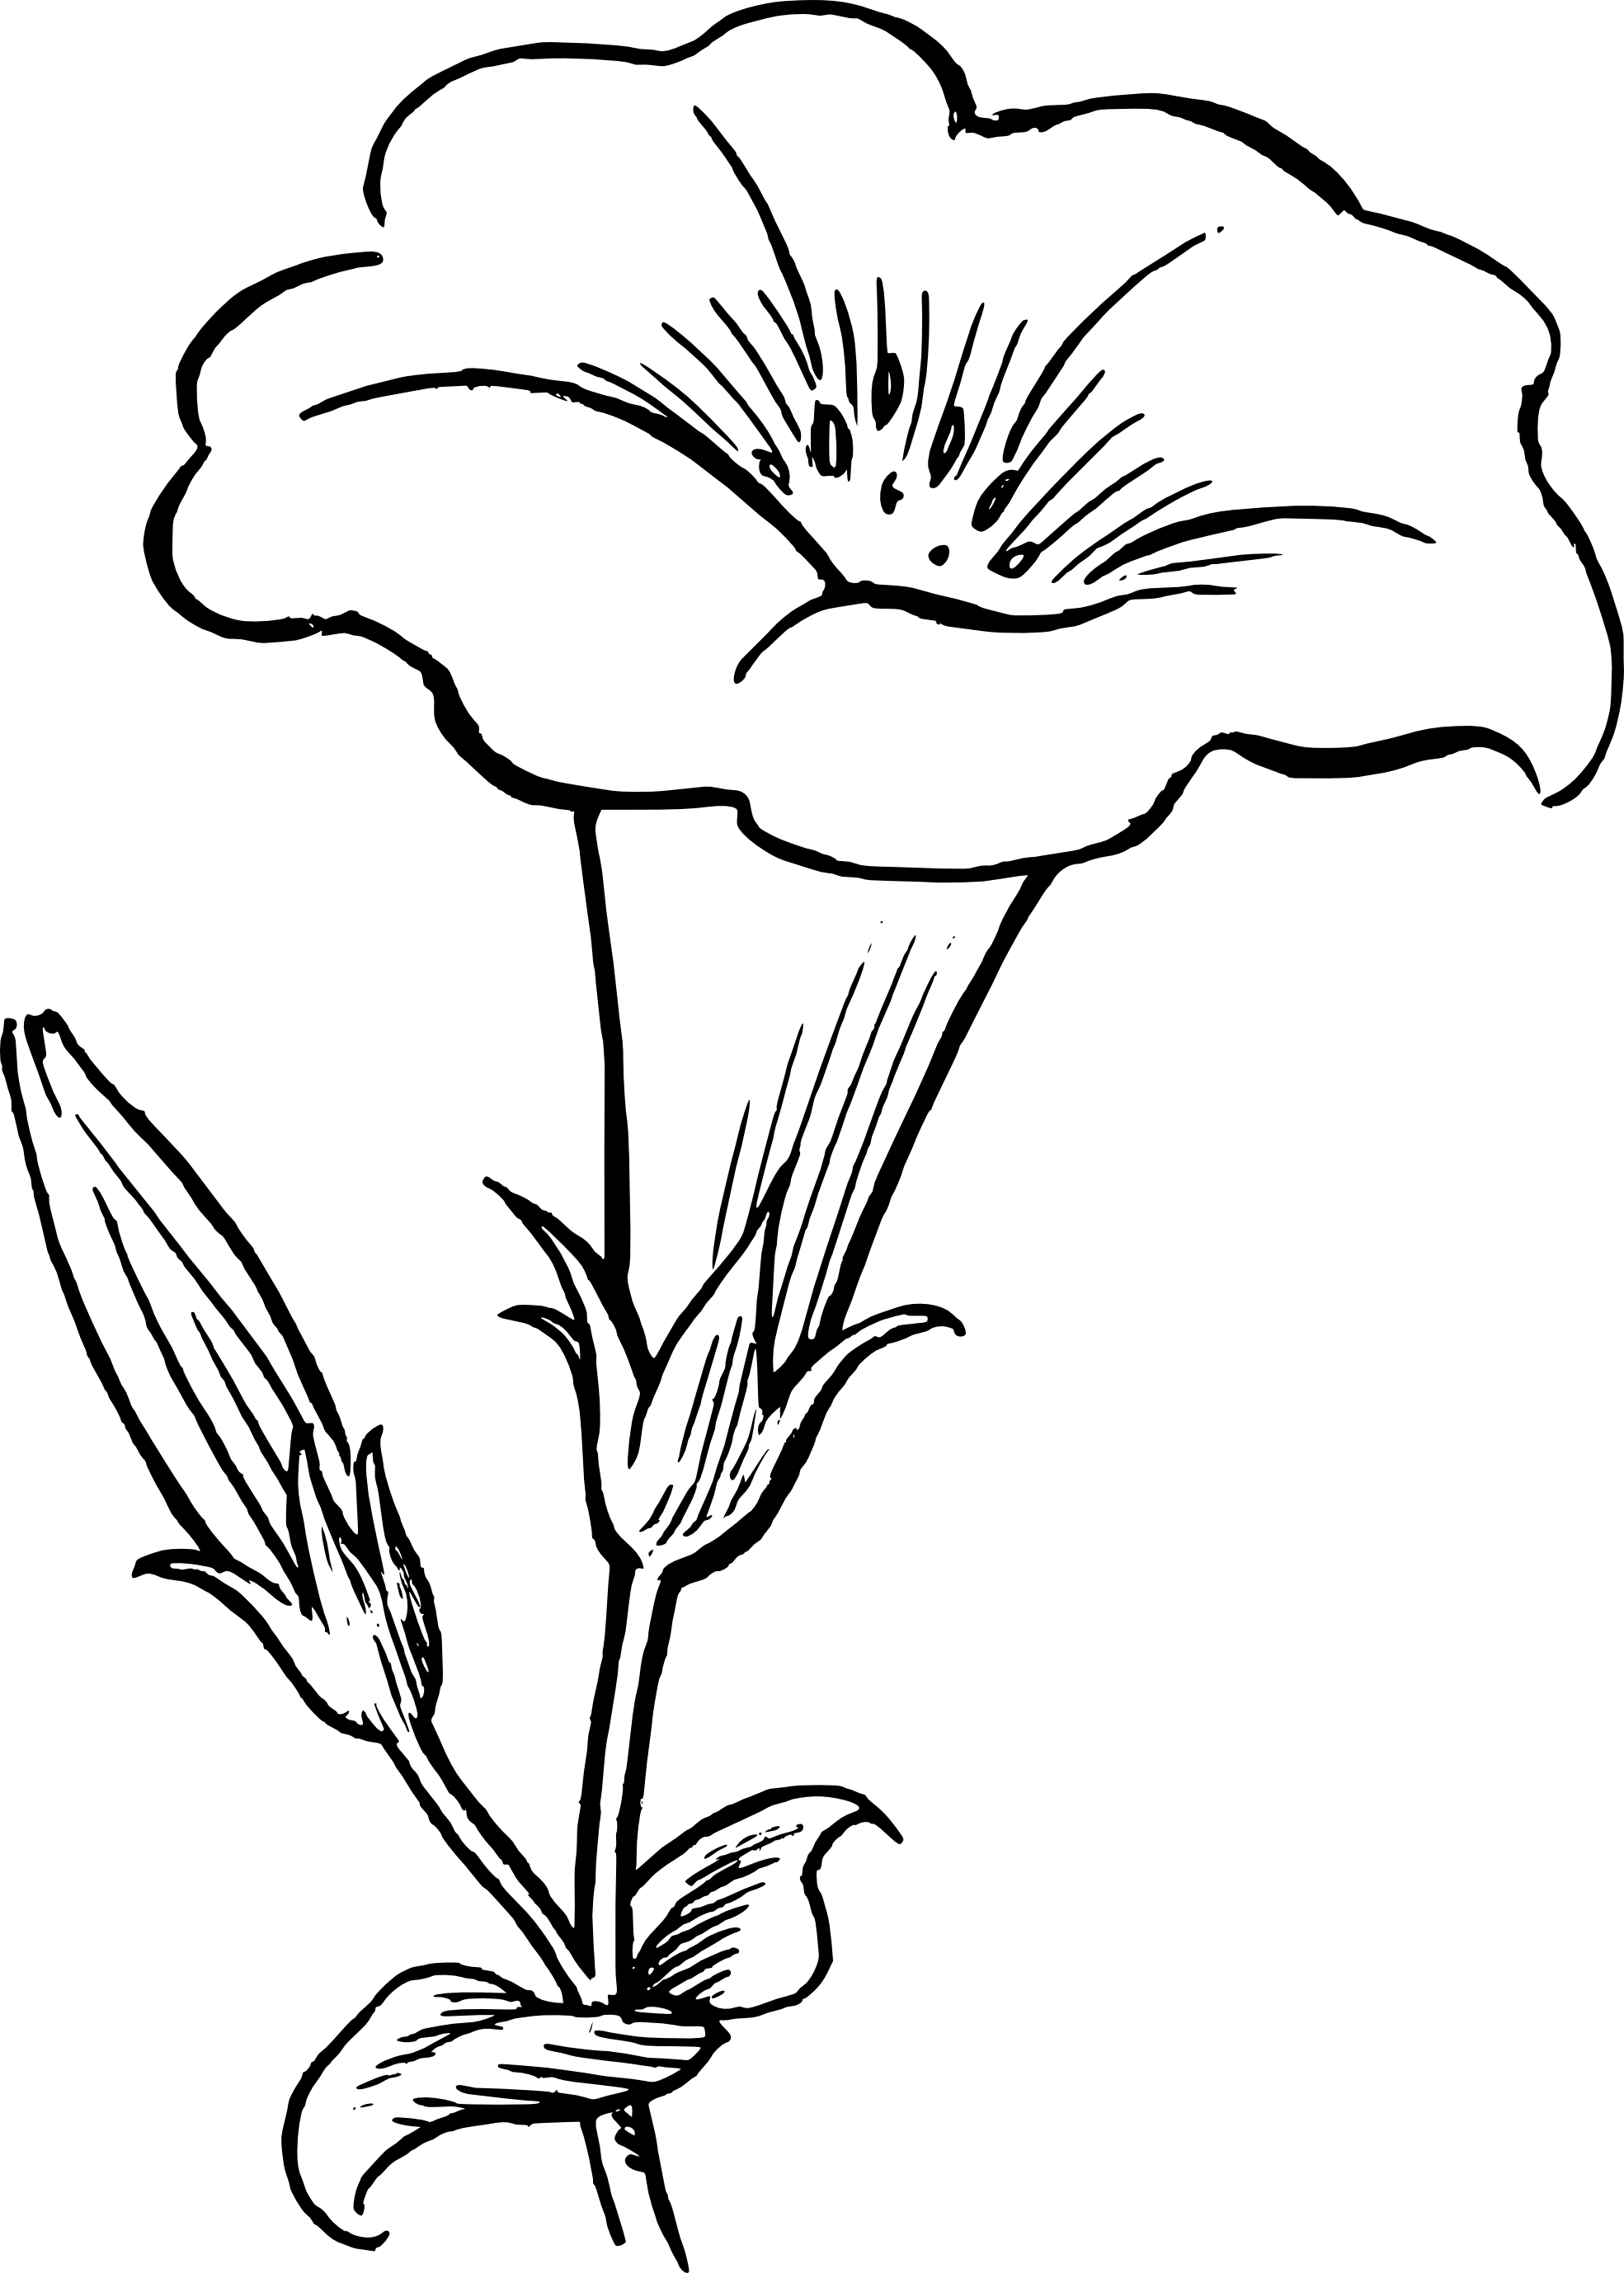 Free picture of flowers clip black and white download Black And White Flower Drawing | Clipart Panda - Free Clipart Images ... clip black and white download